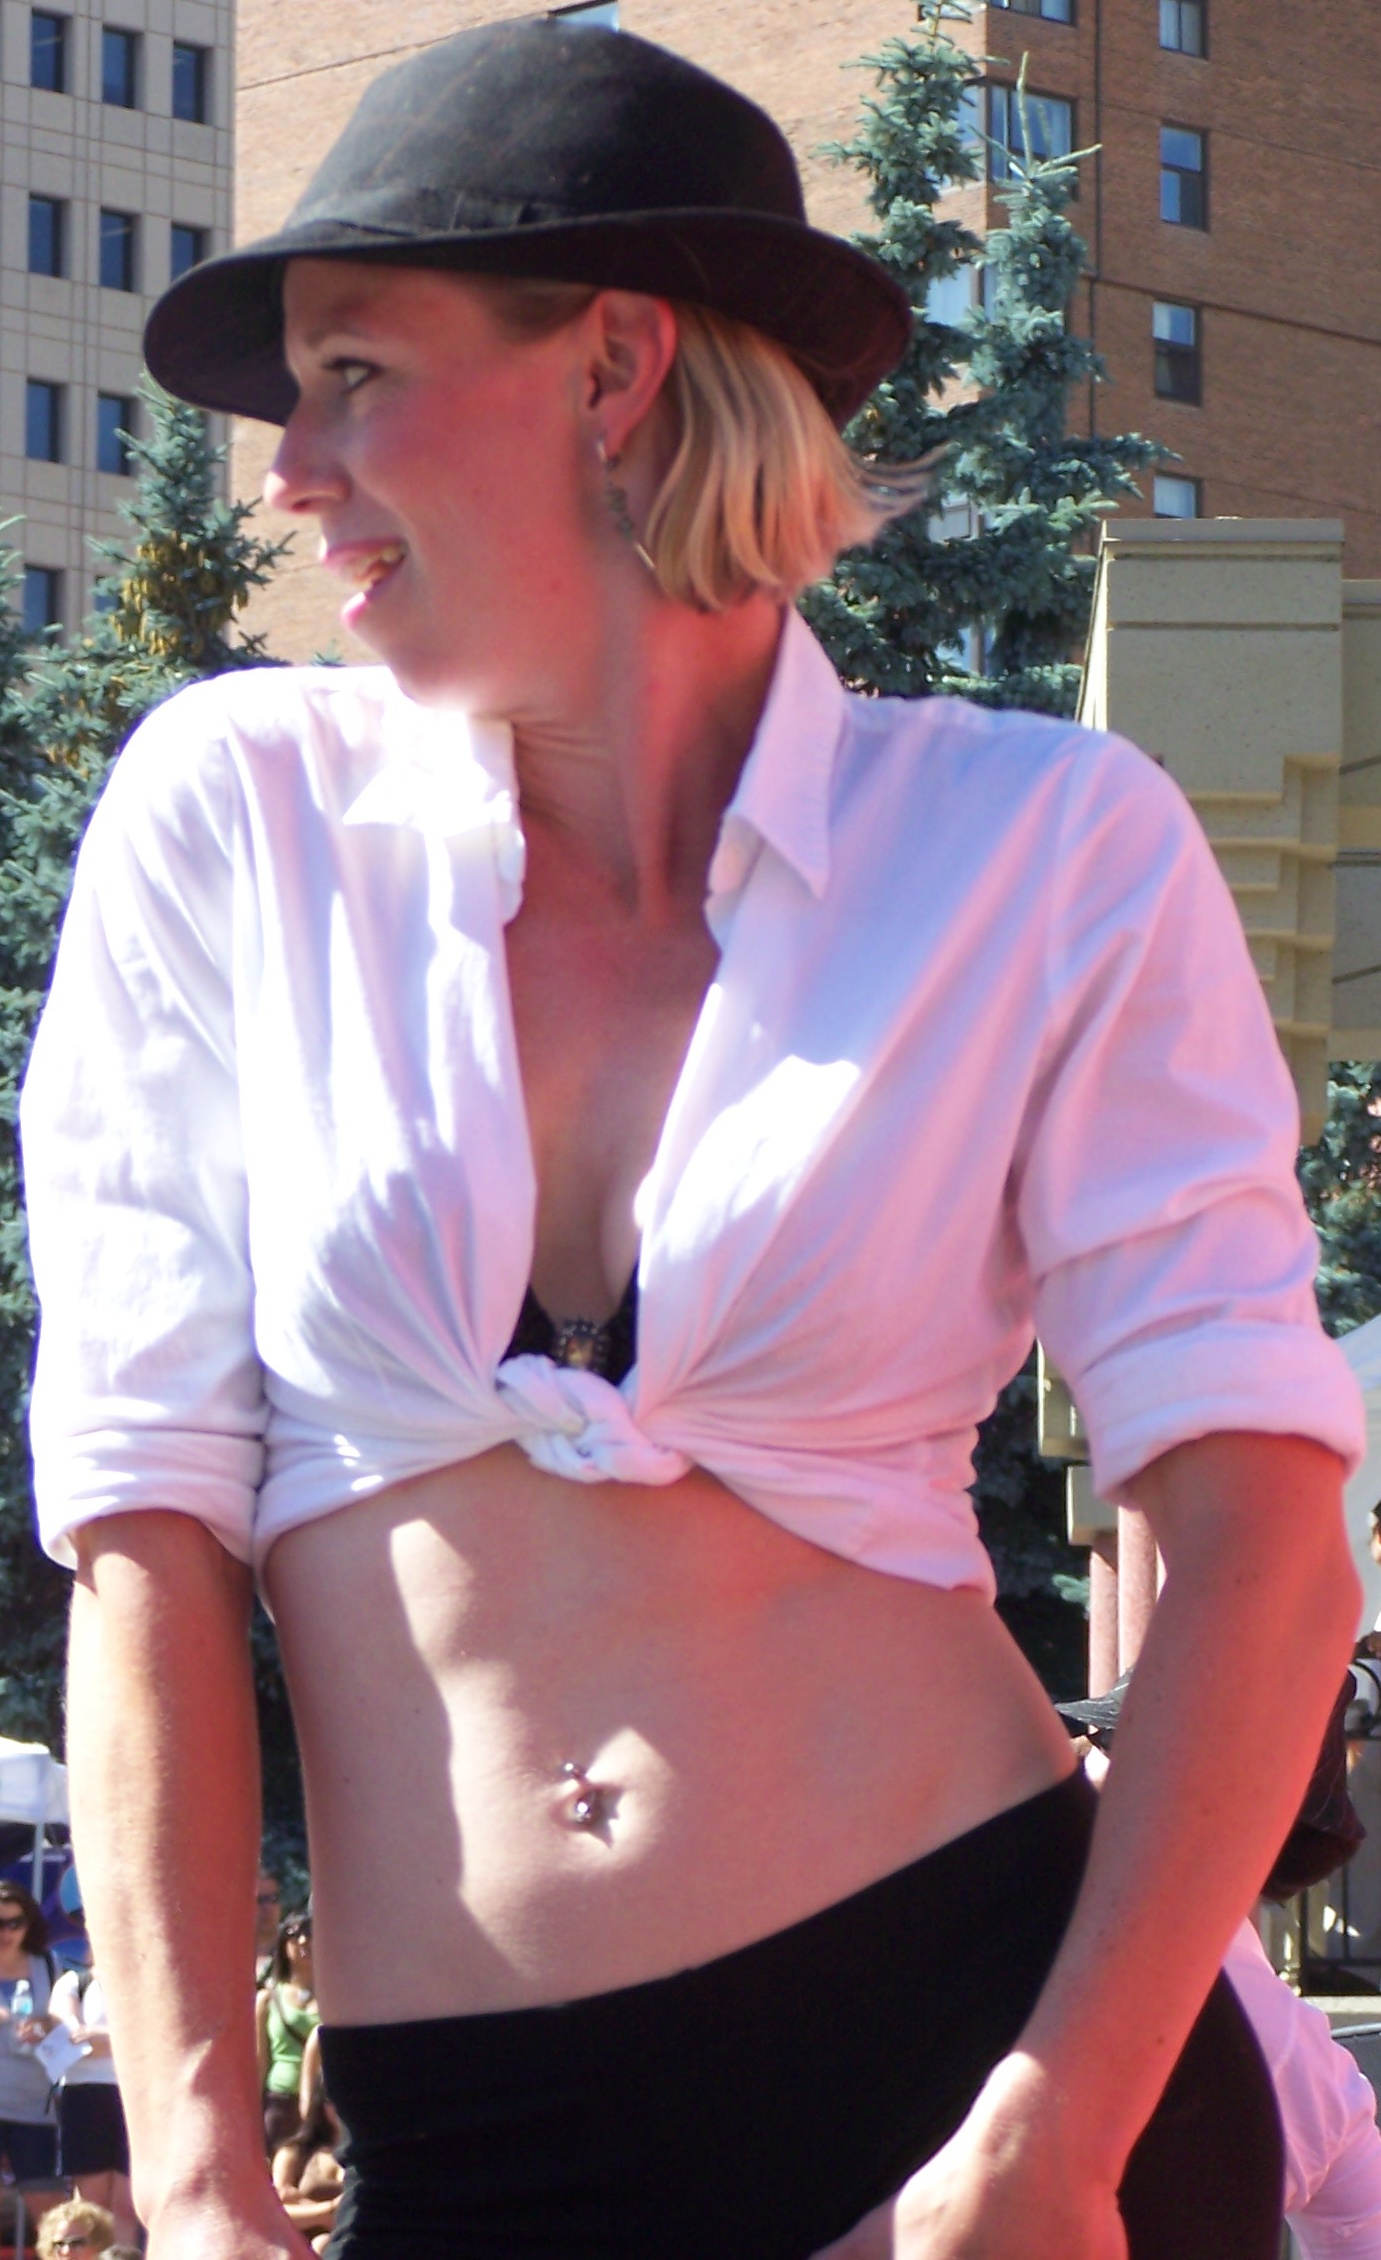 Description Woman with tied shirt.jpg